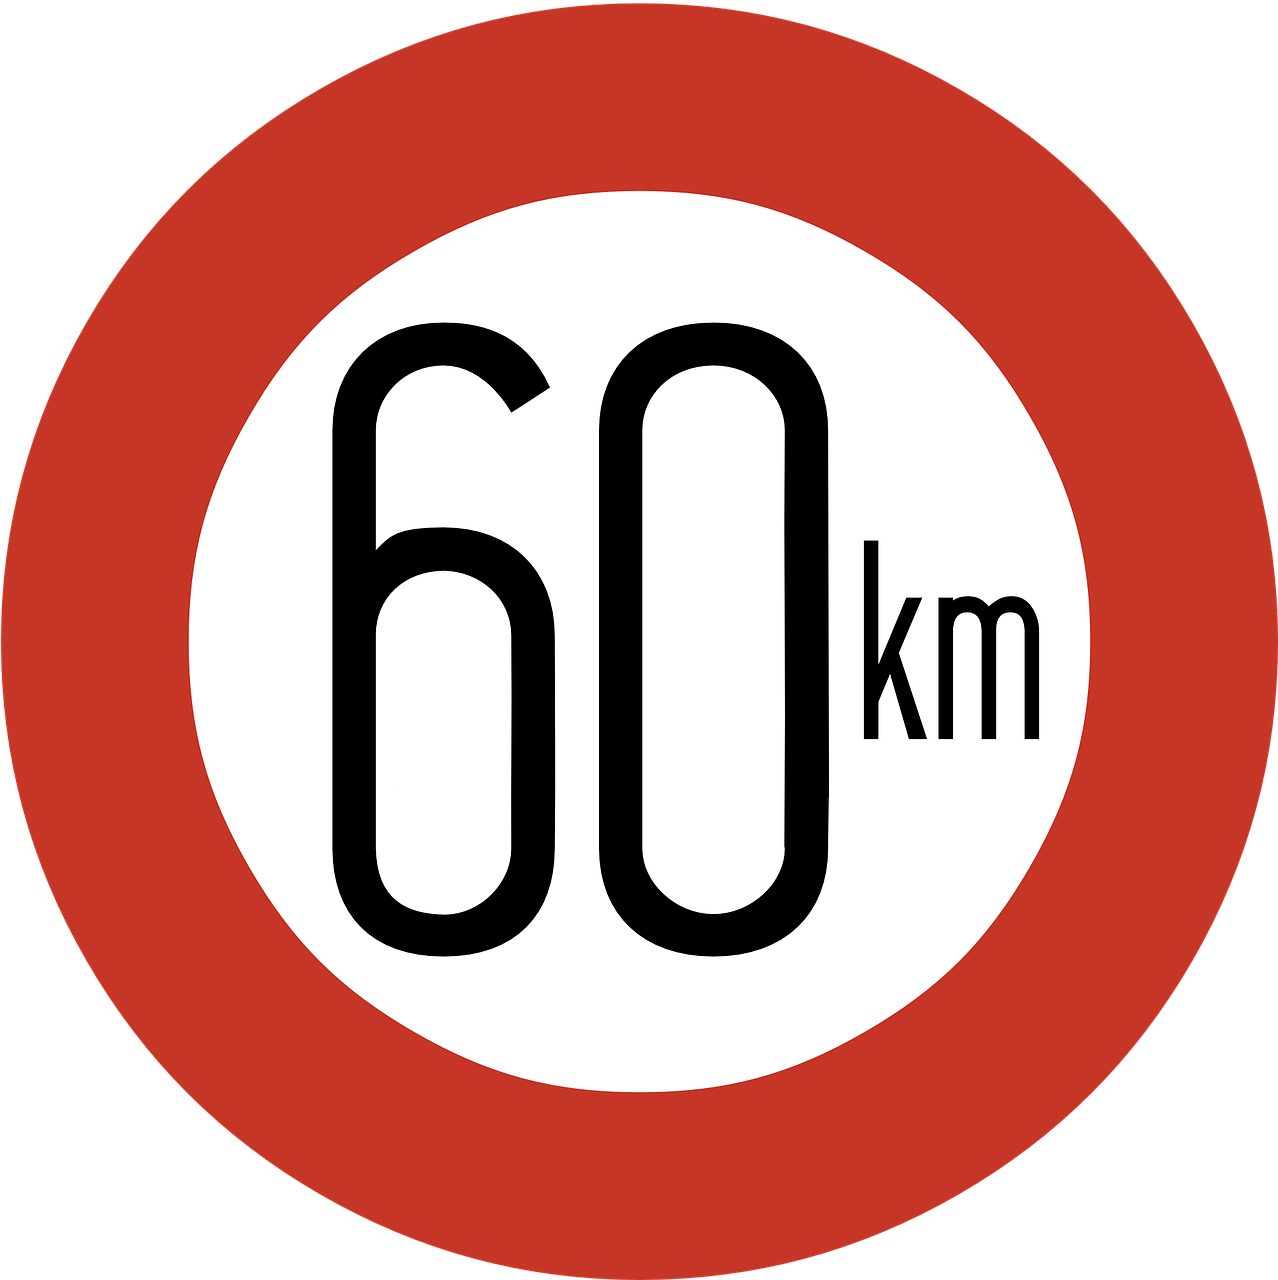 speed limit sign 60 km free photo